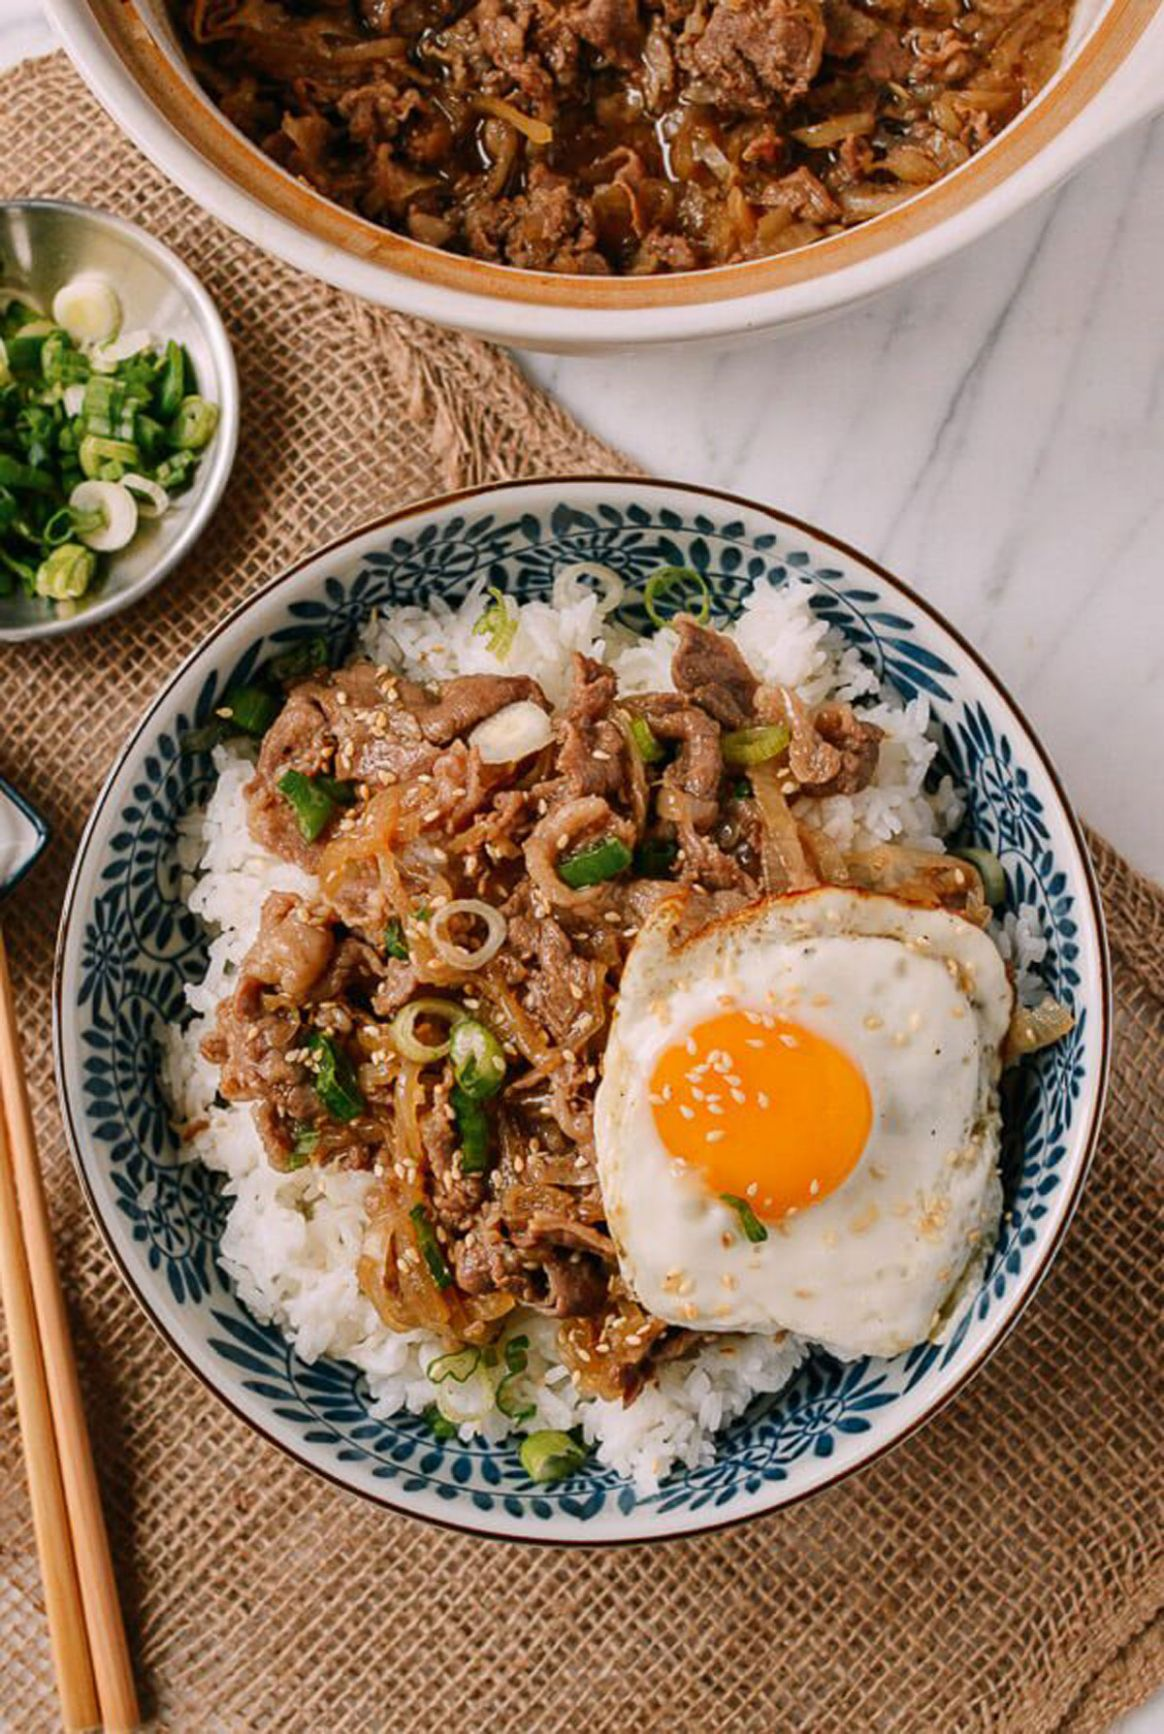 8 Easy Japanese Recipes If You're Just Starting Out | Kitchn